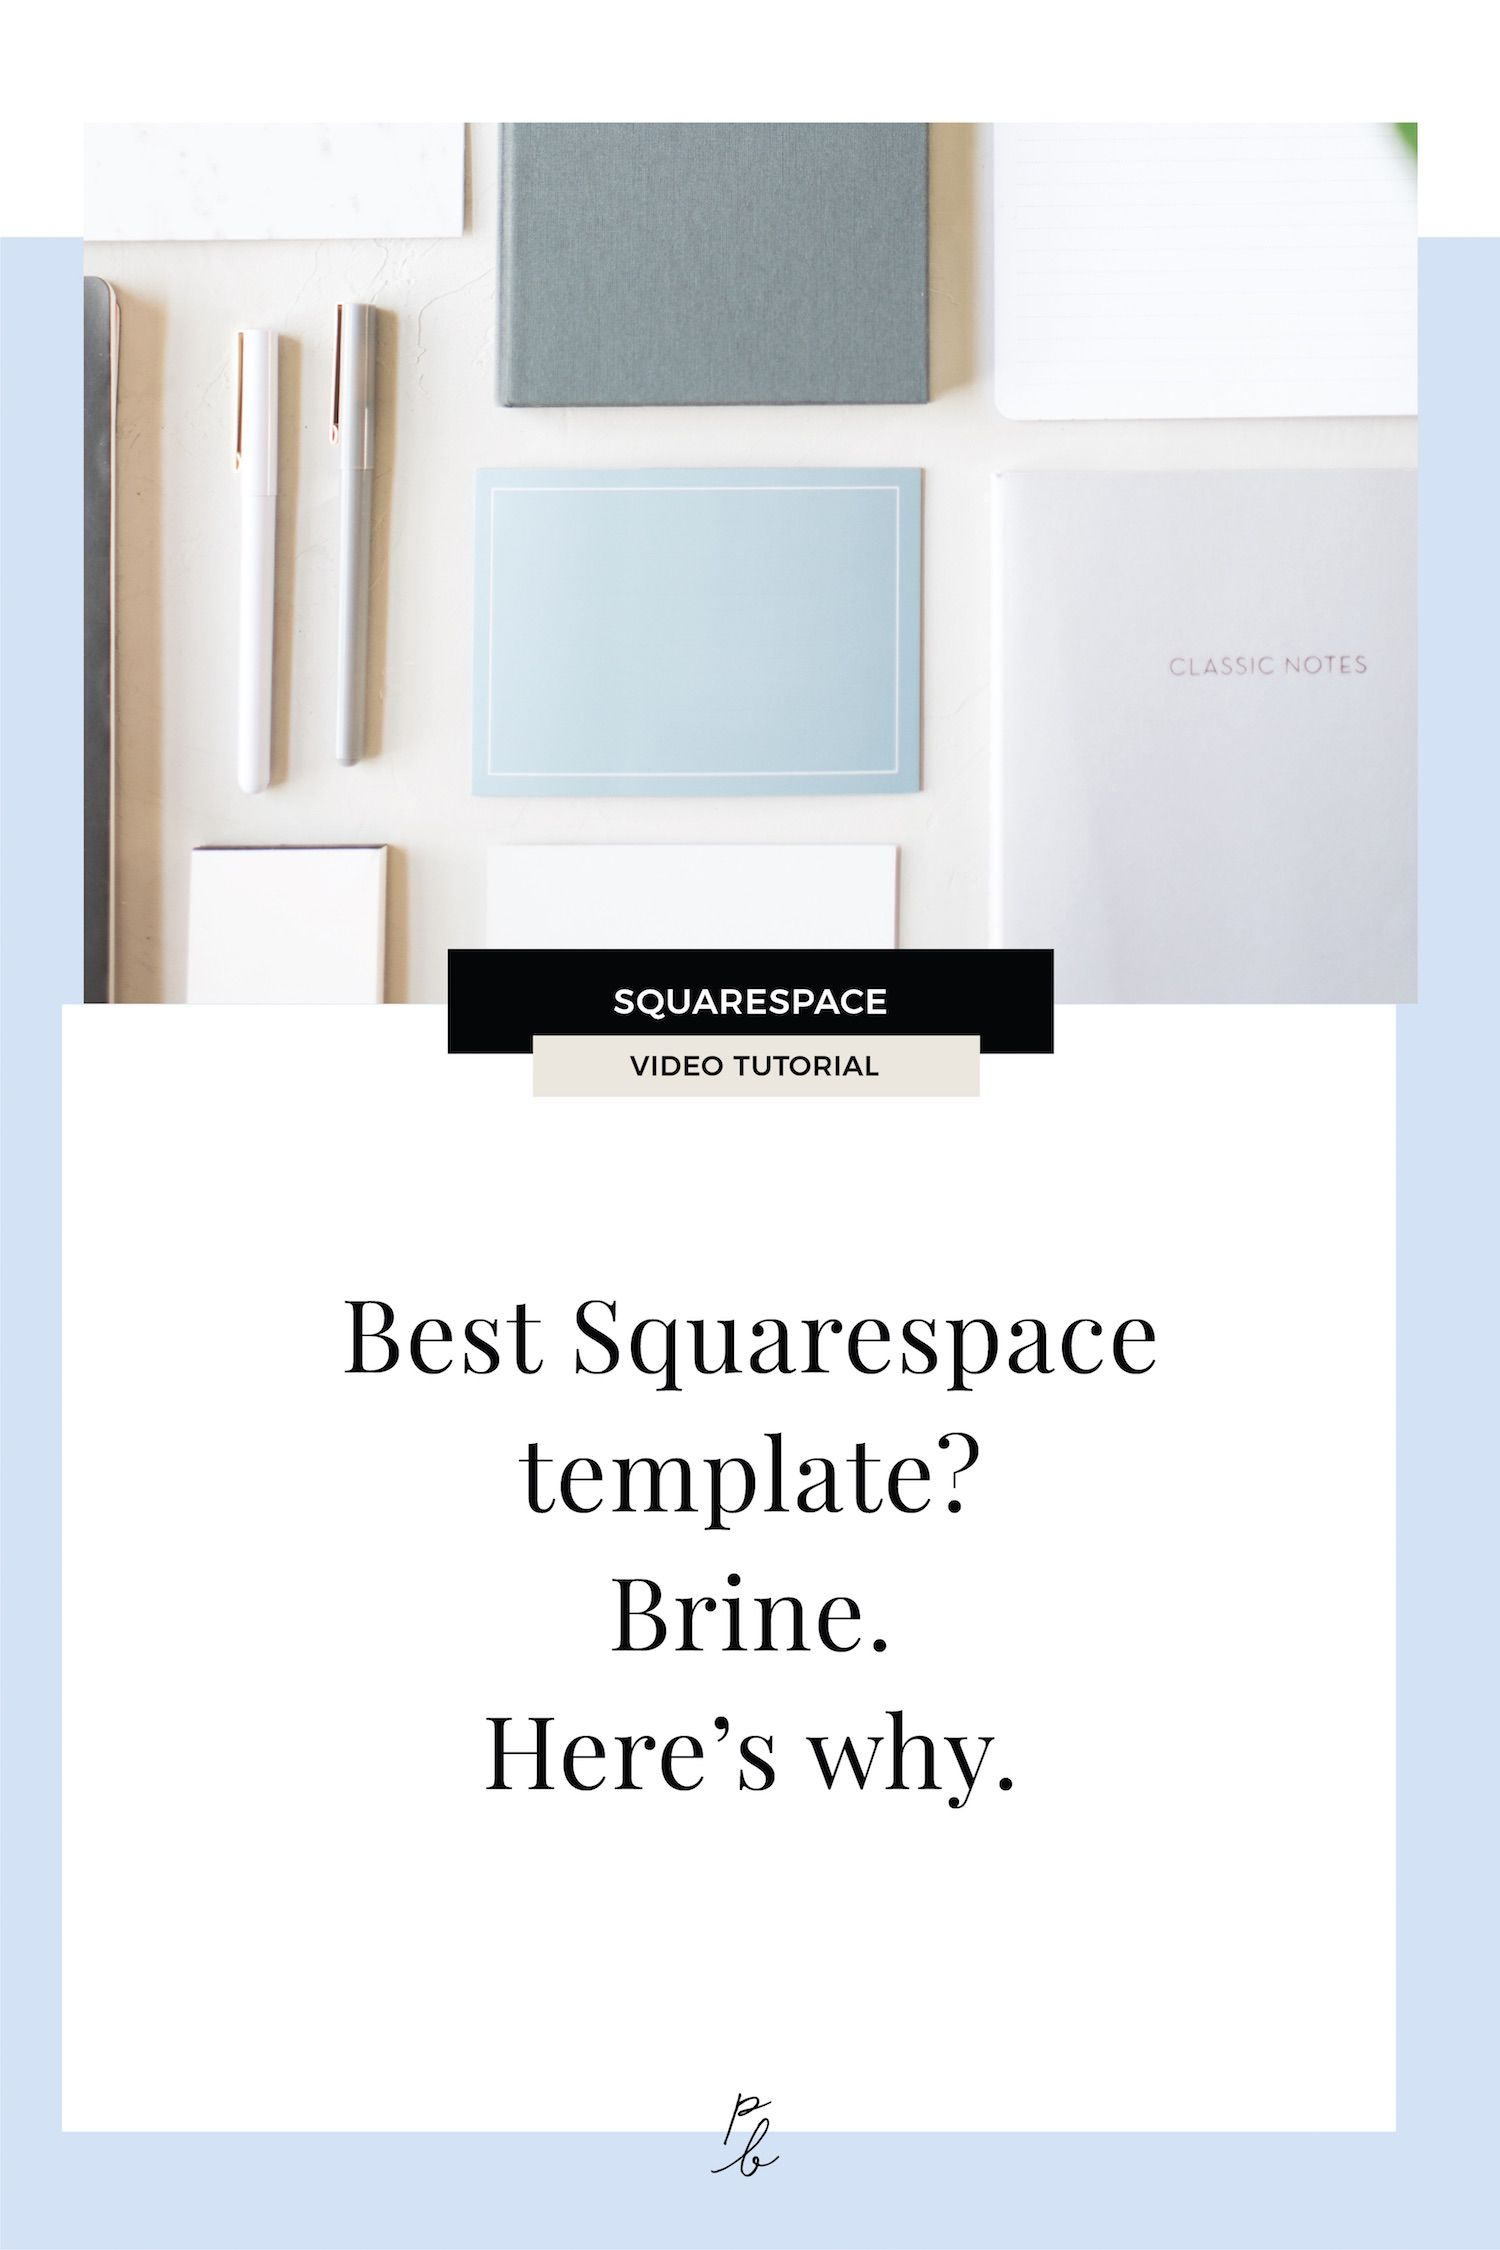 Best Squarespace Template For Blog | What Is The Best Squarespace Template Brine Here S Why